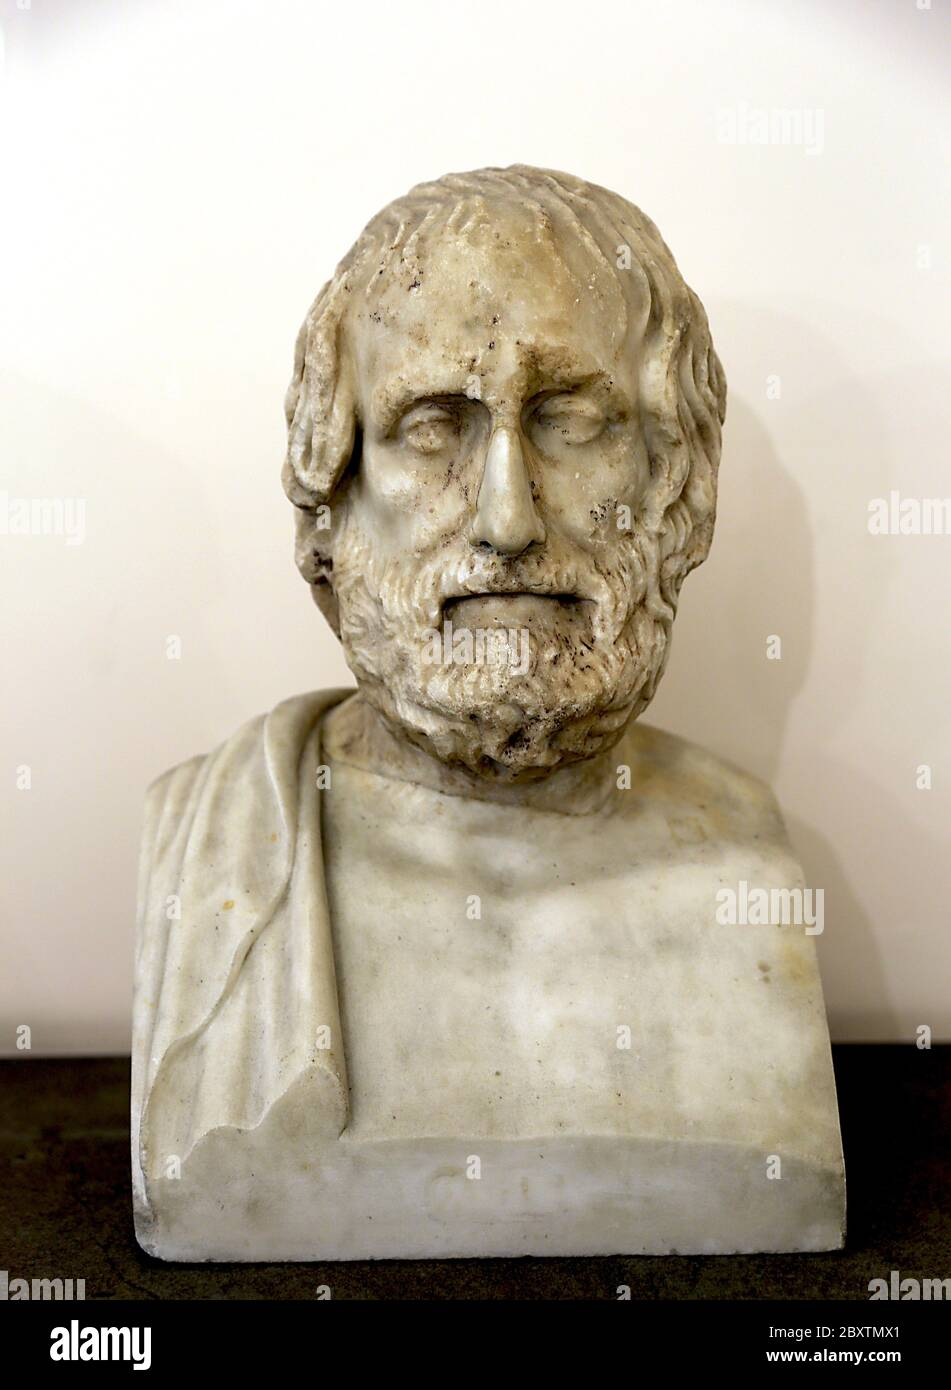 The tragic poet Euripides (c. 484 - 406 BC). Roman bust, 1st cent AD. Copy of a Greek original. Naples Archaeological Museum. Italy. Stock Photo